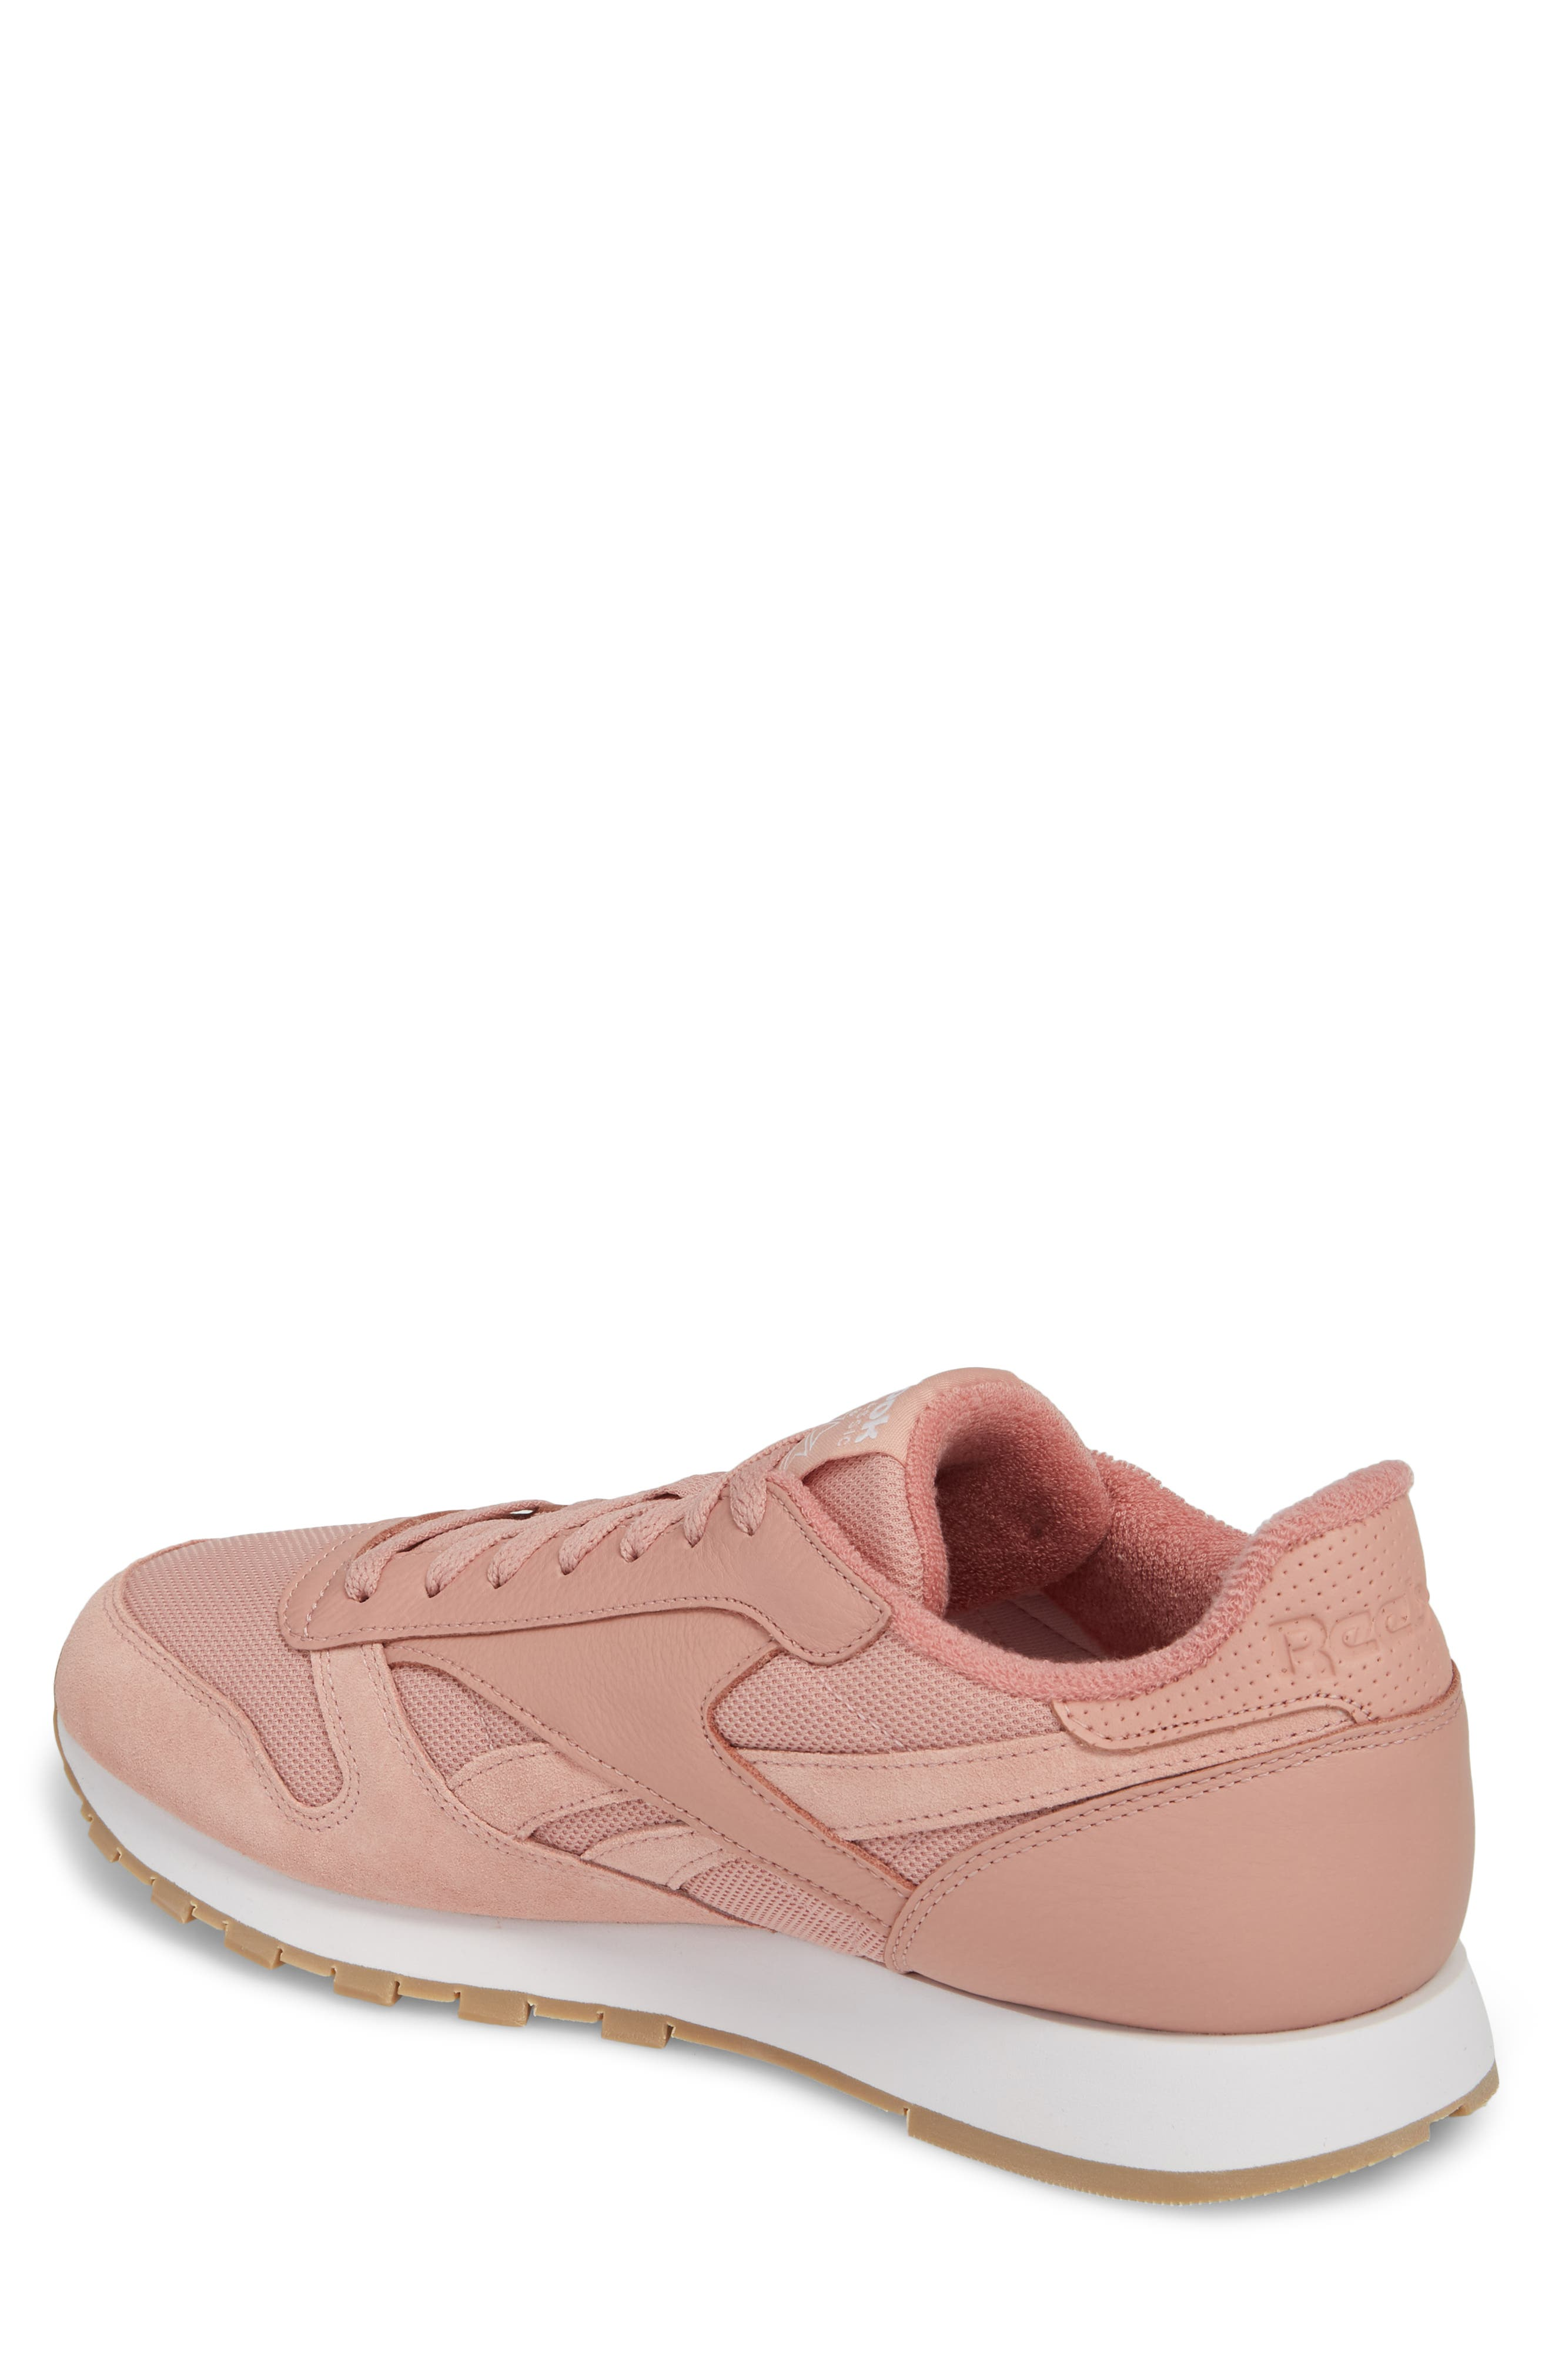 ESTL Classic Leather Sneaker,                             Alternate thumbnail 2, color,                             Chalk Pink/ White